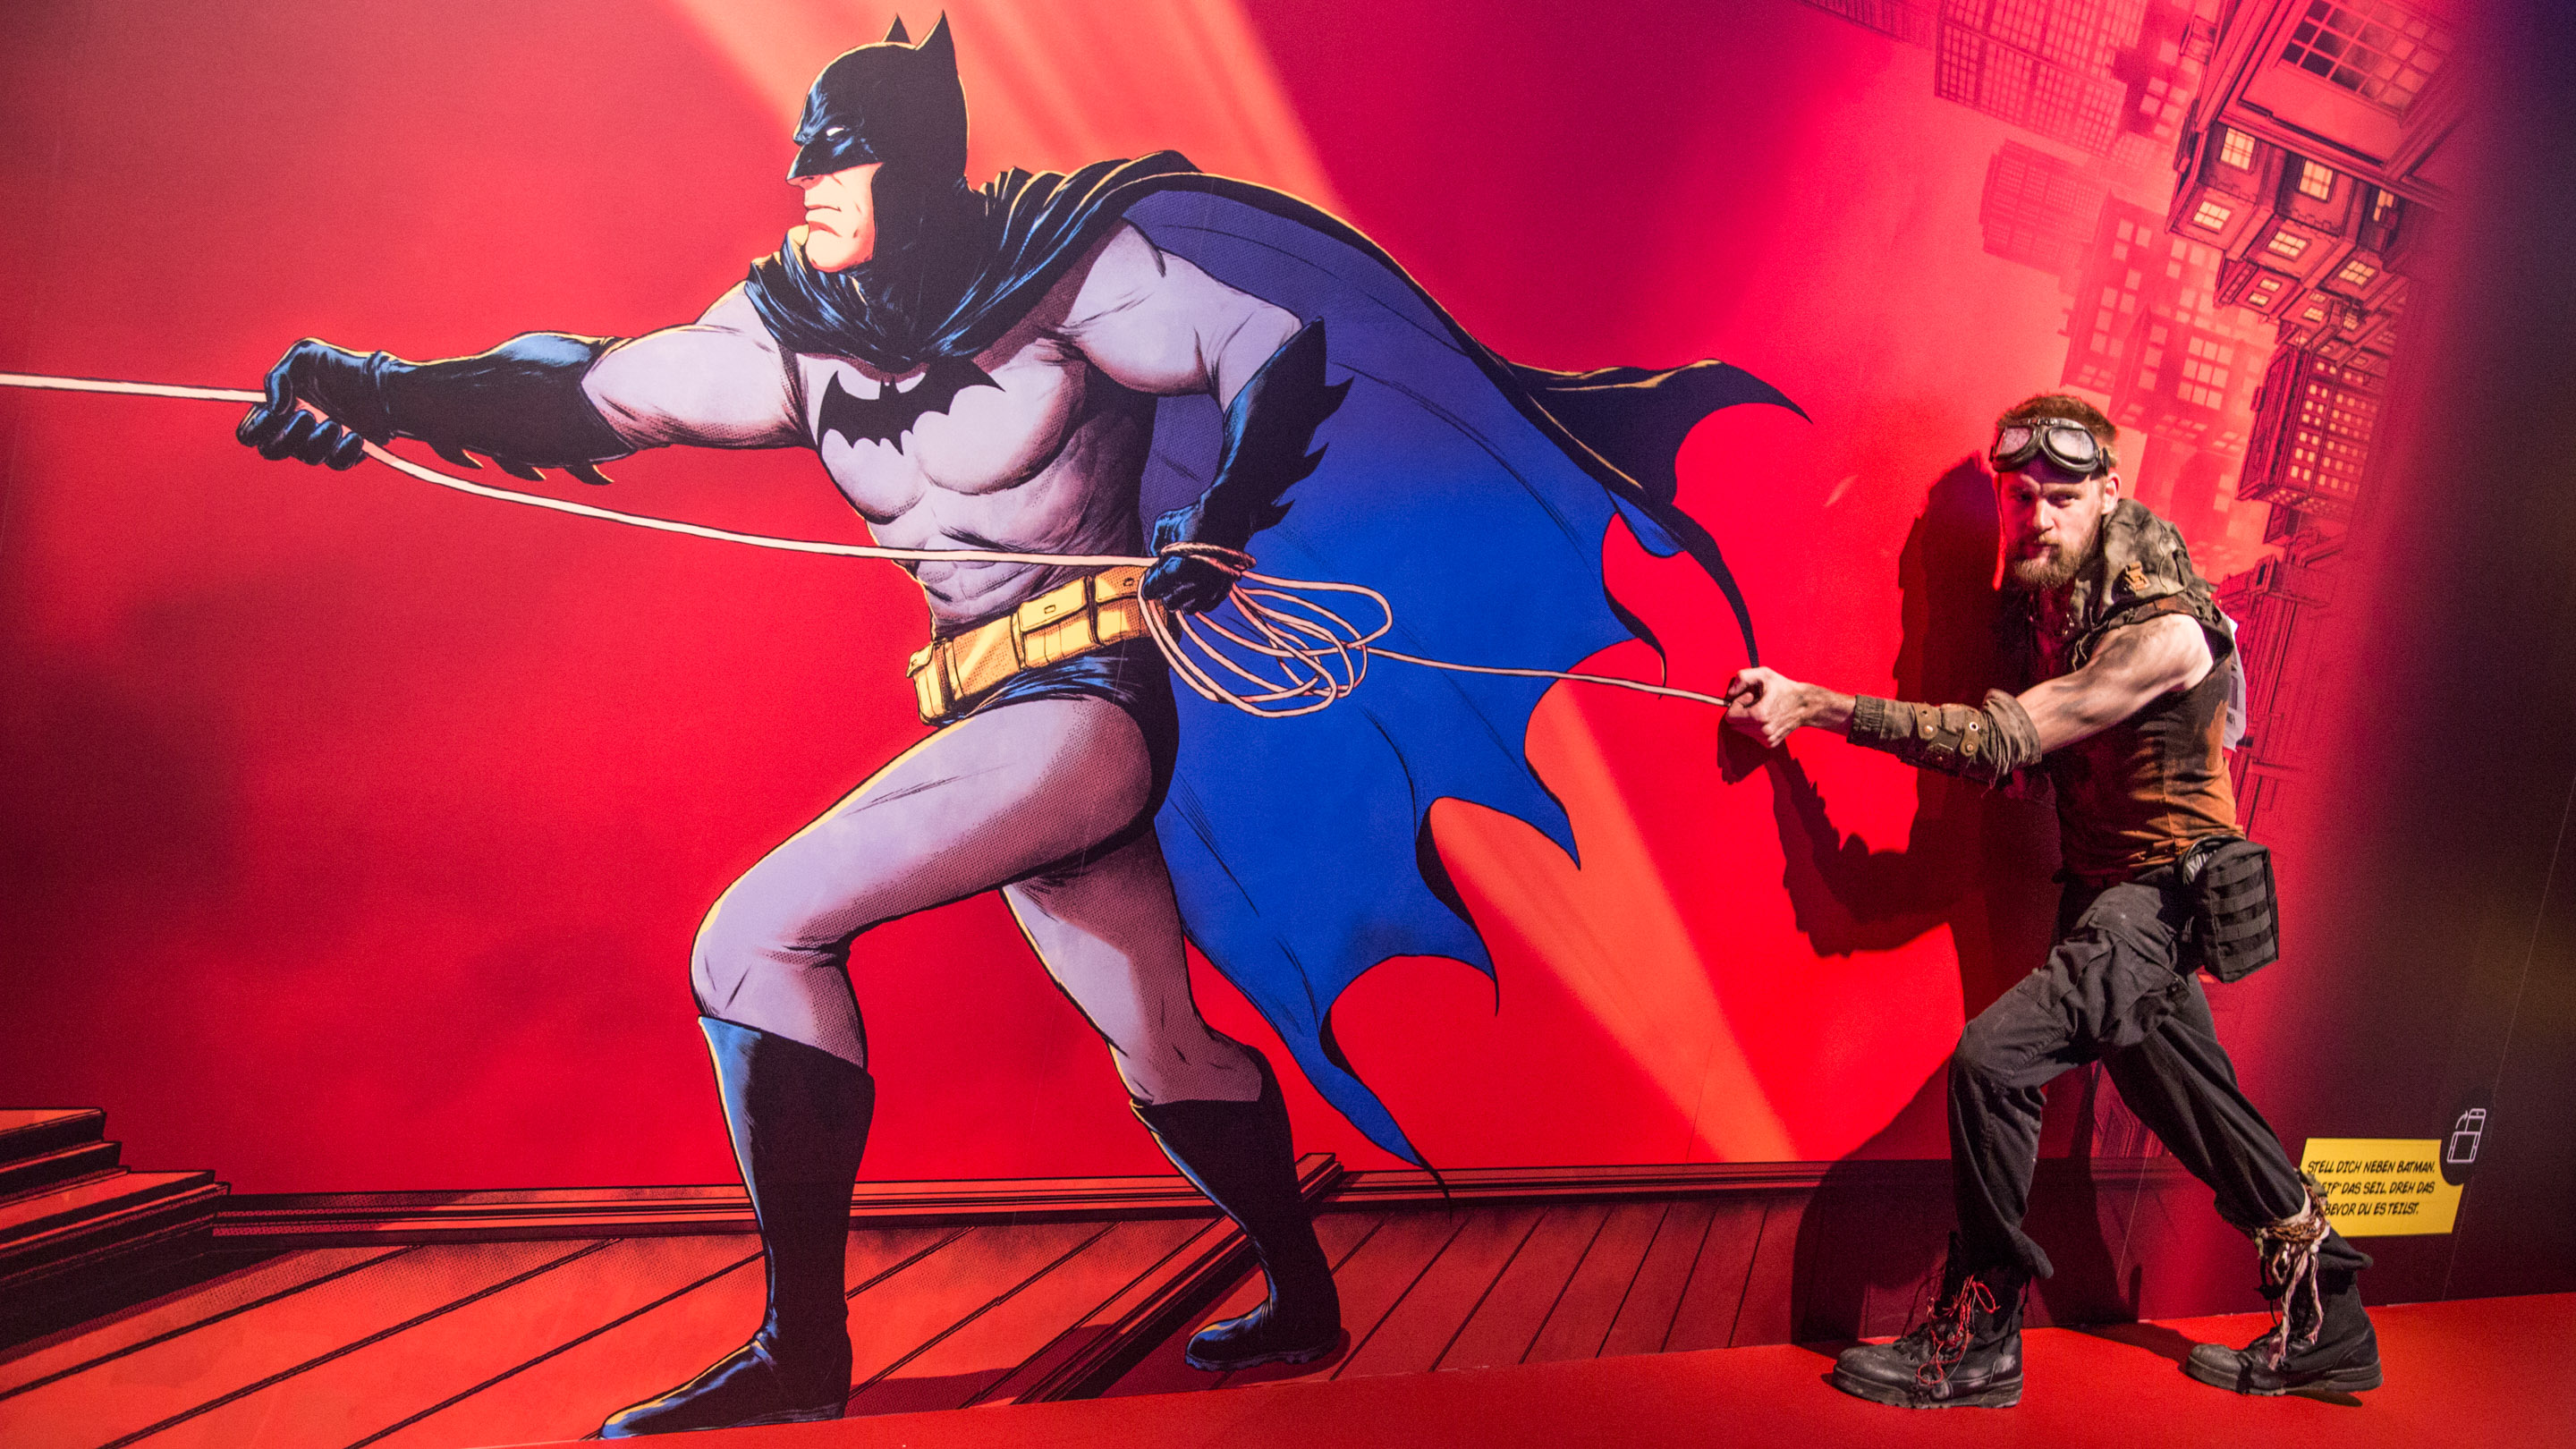 Stand:  Warner Bros., Halle 8, Comic Con Experience 2019